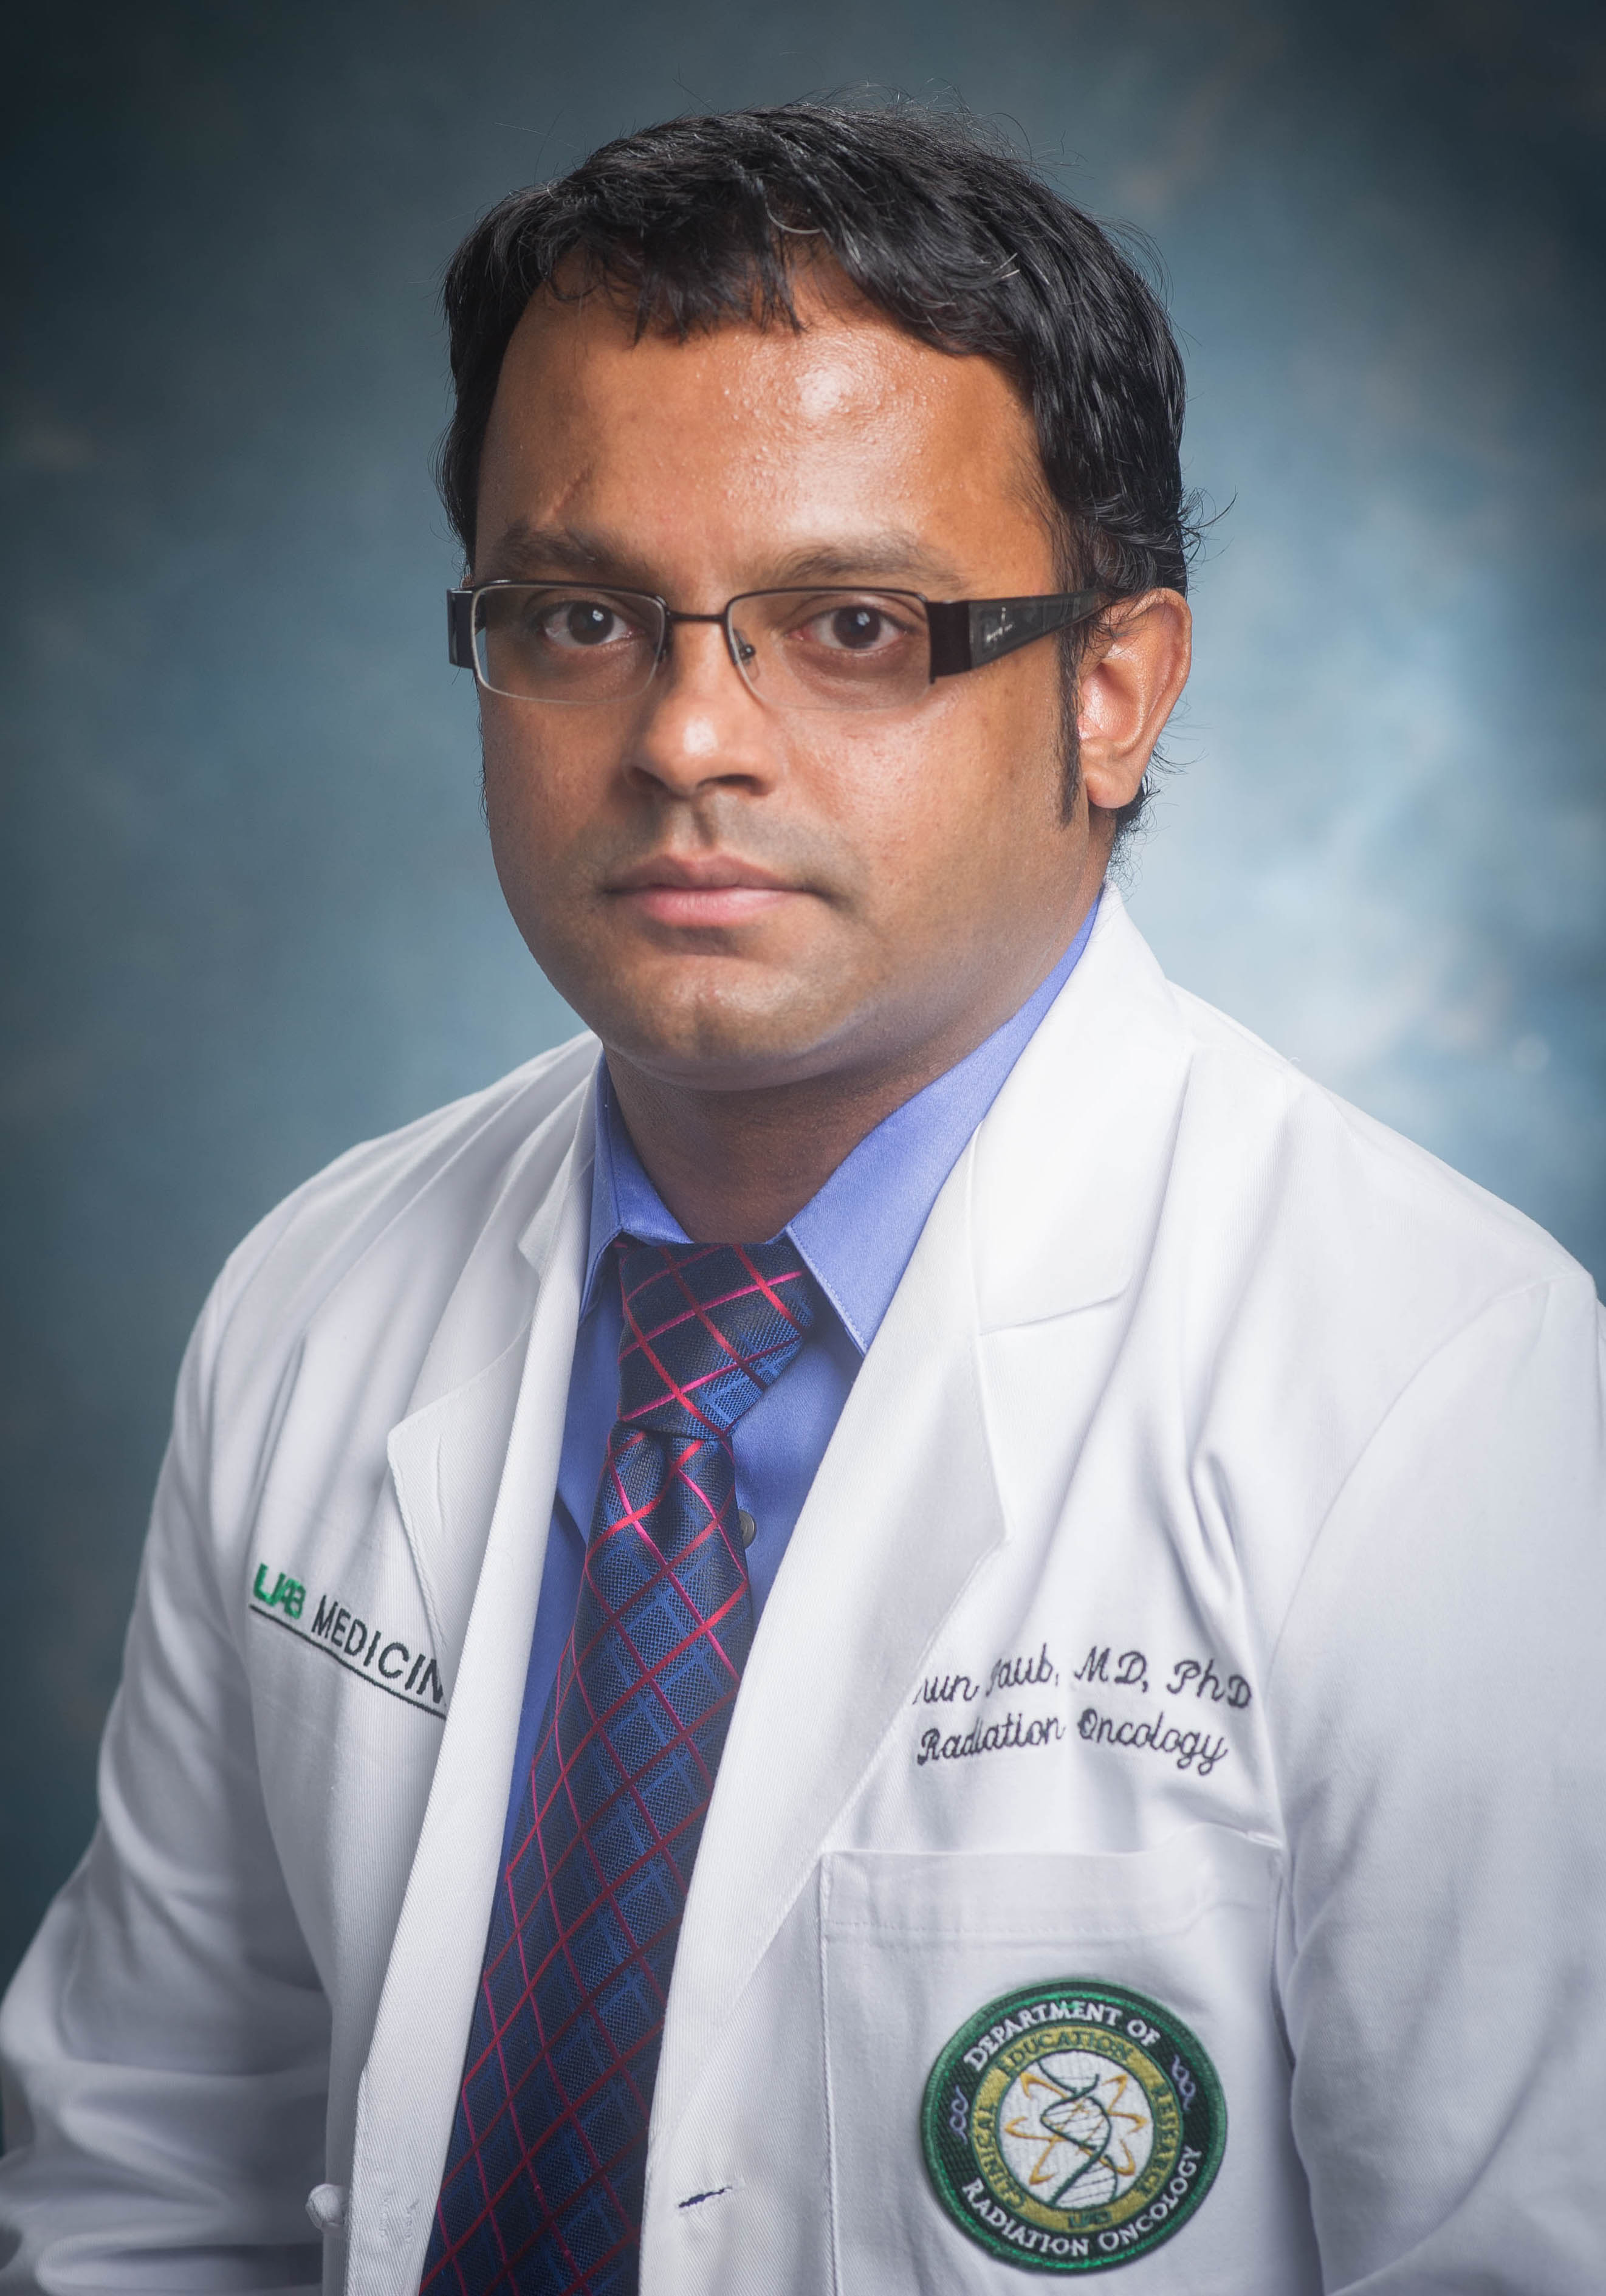 Arun Paul uab radiation oncology